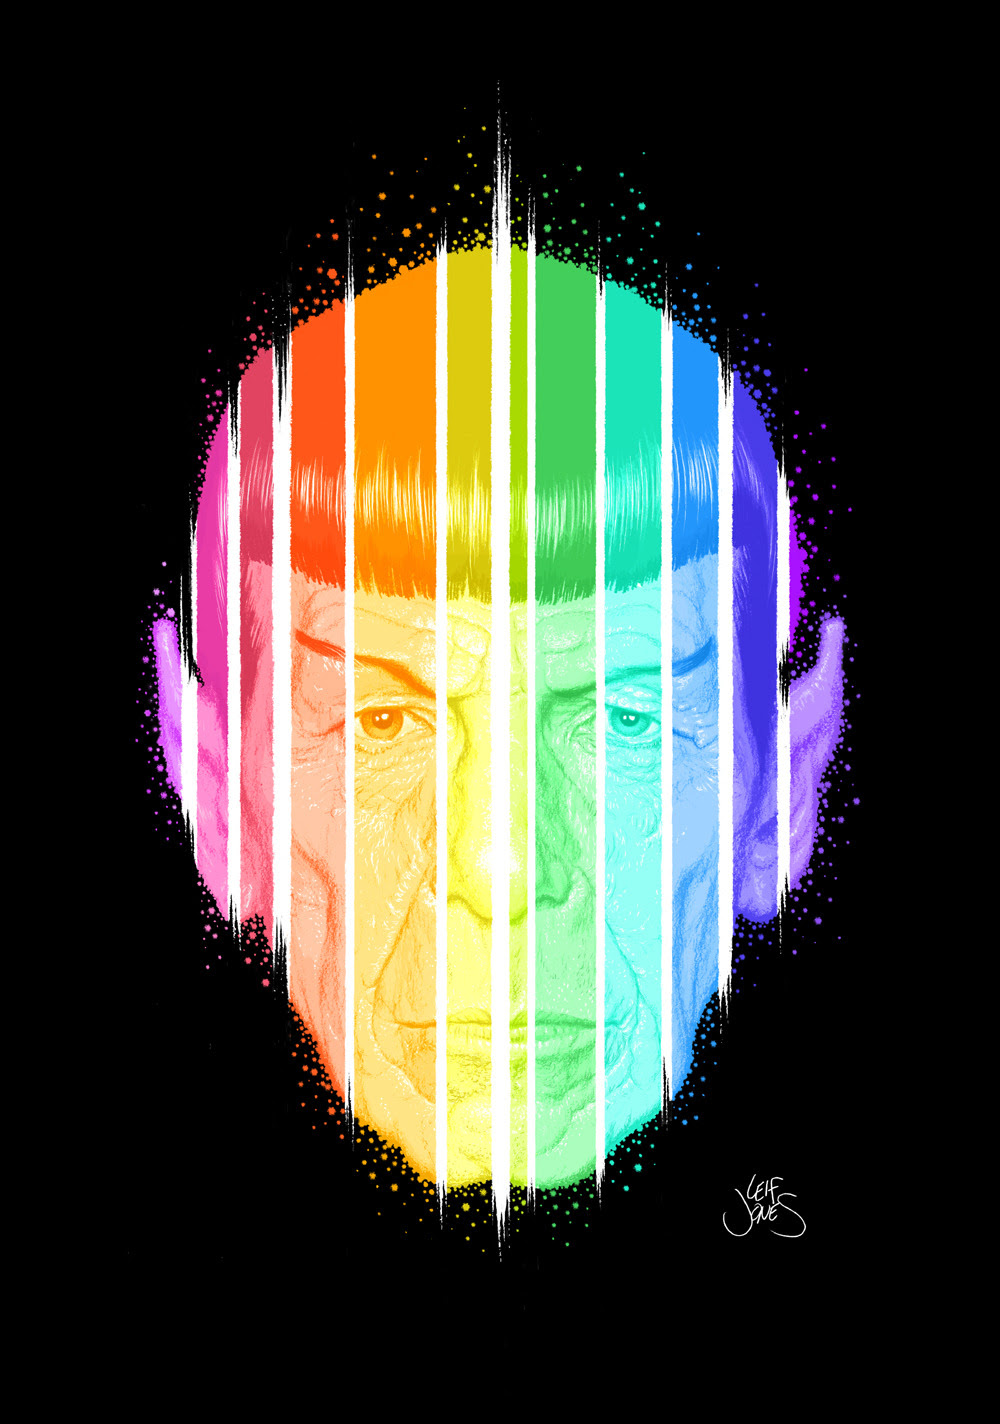 Spock by Leif Jones